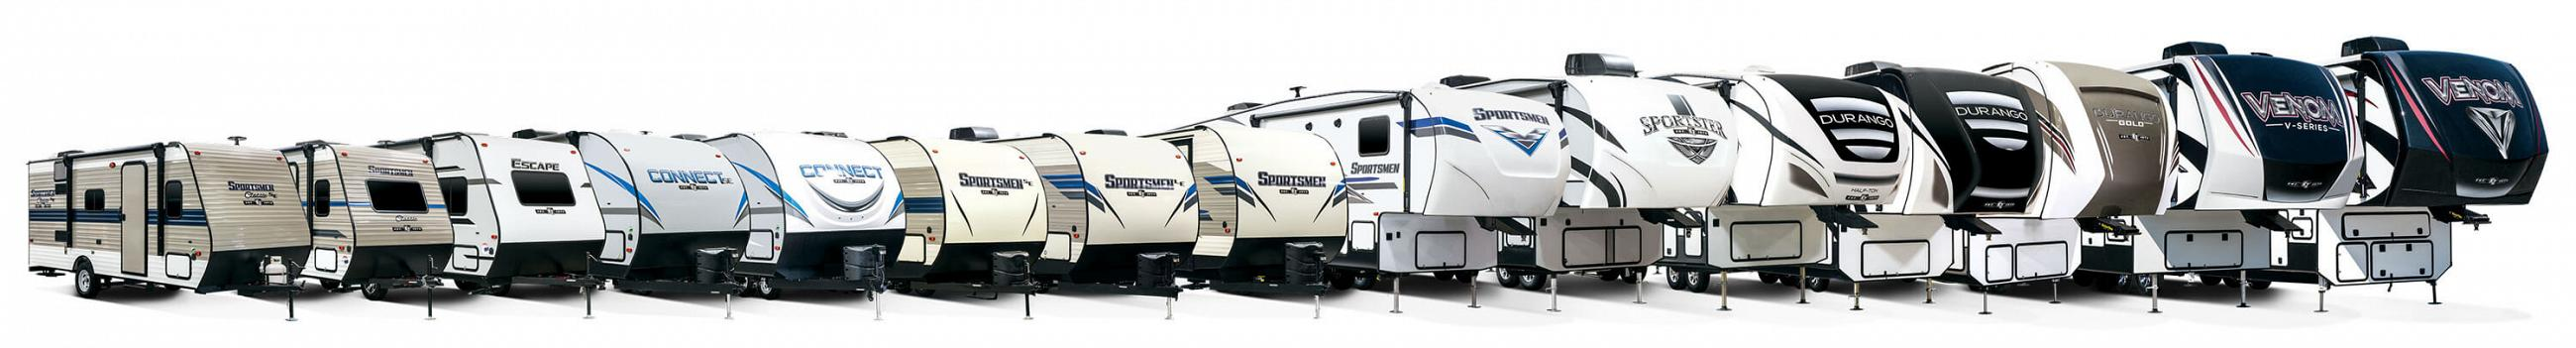 2020 KZ RV Exterior Product Lineup